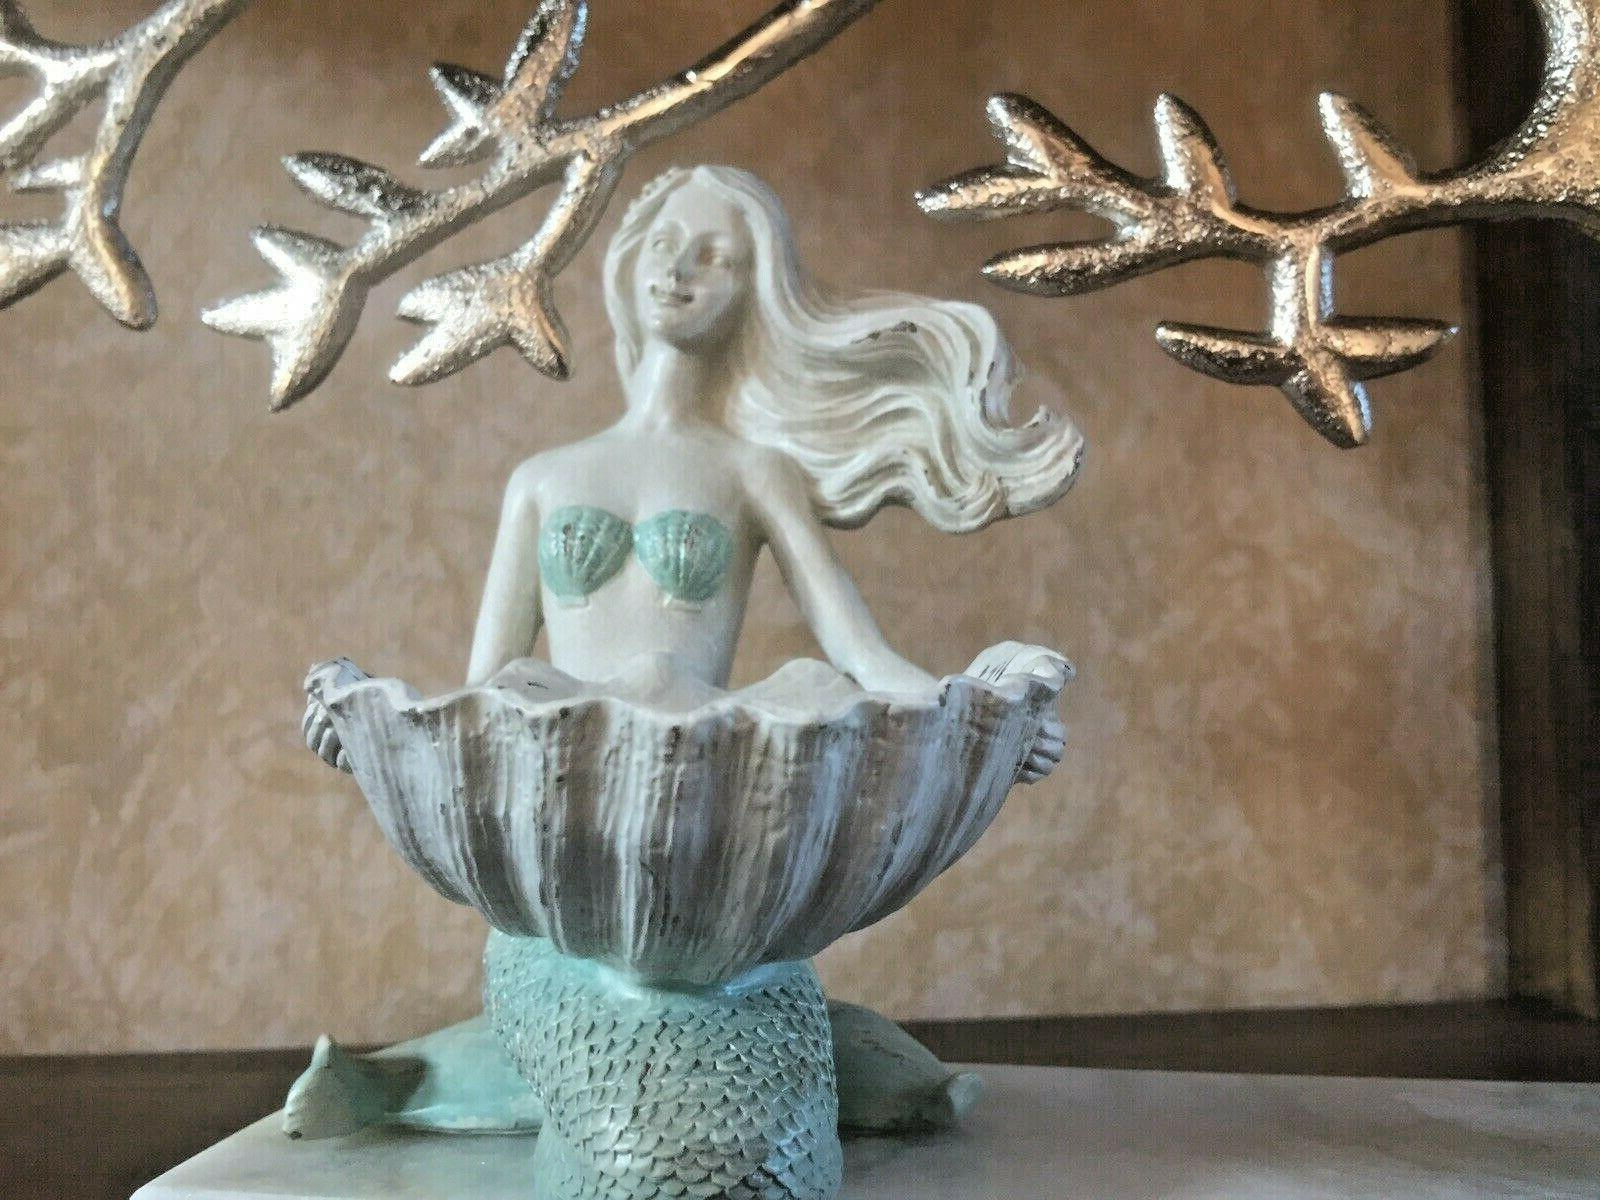 Mermaid White & Candle Holder. Accent